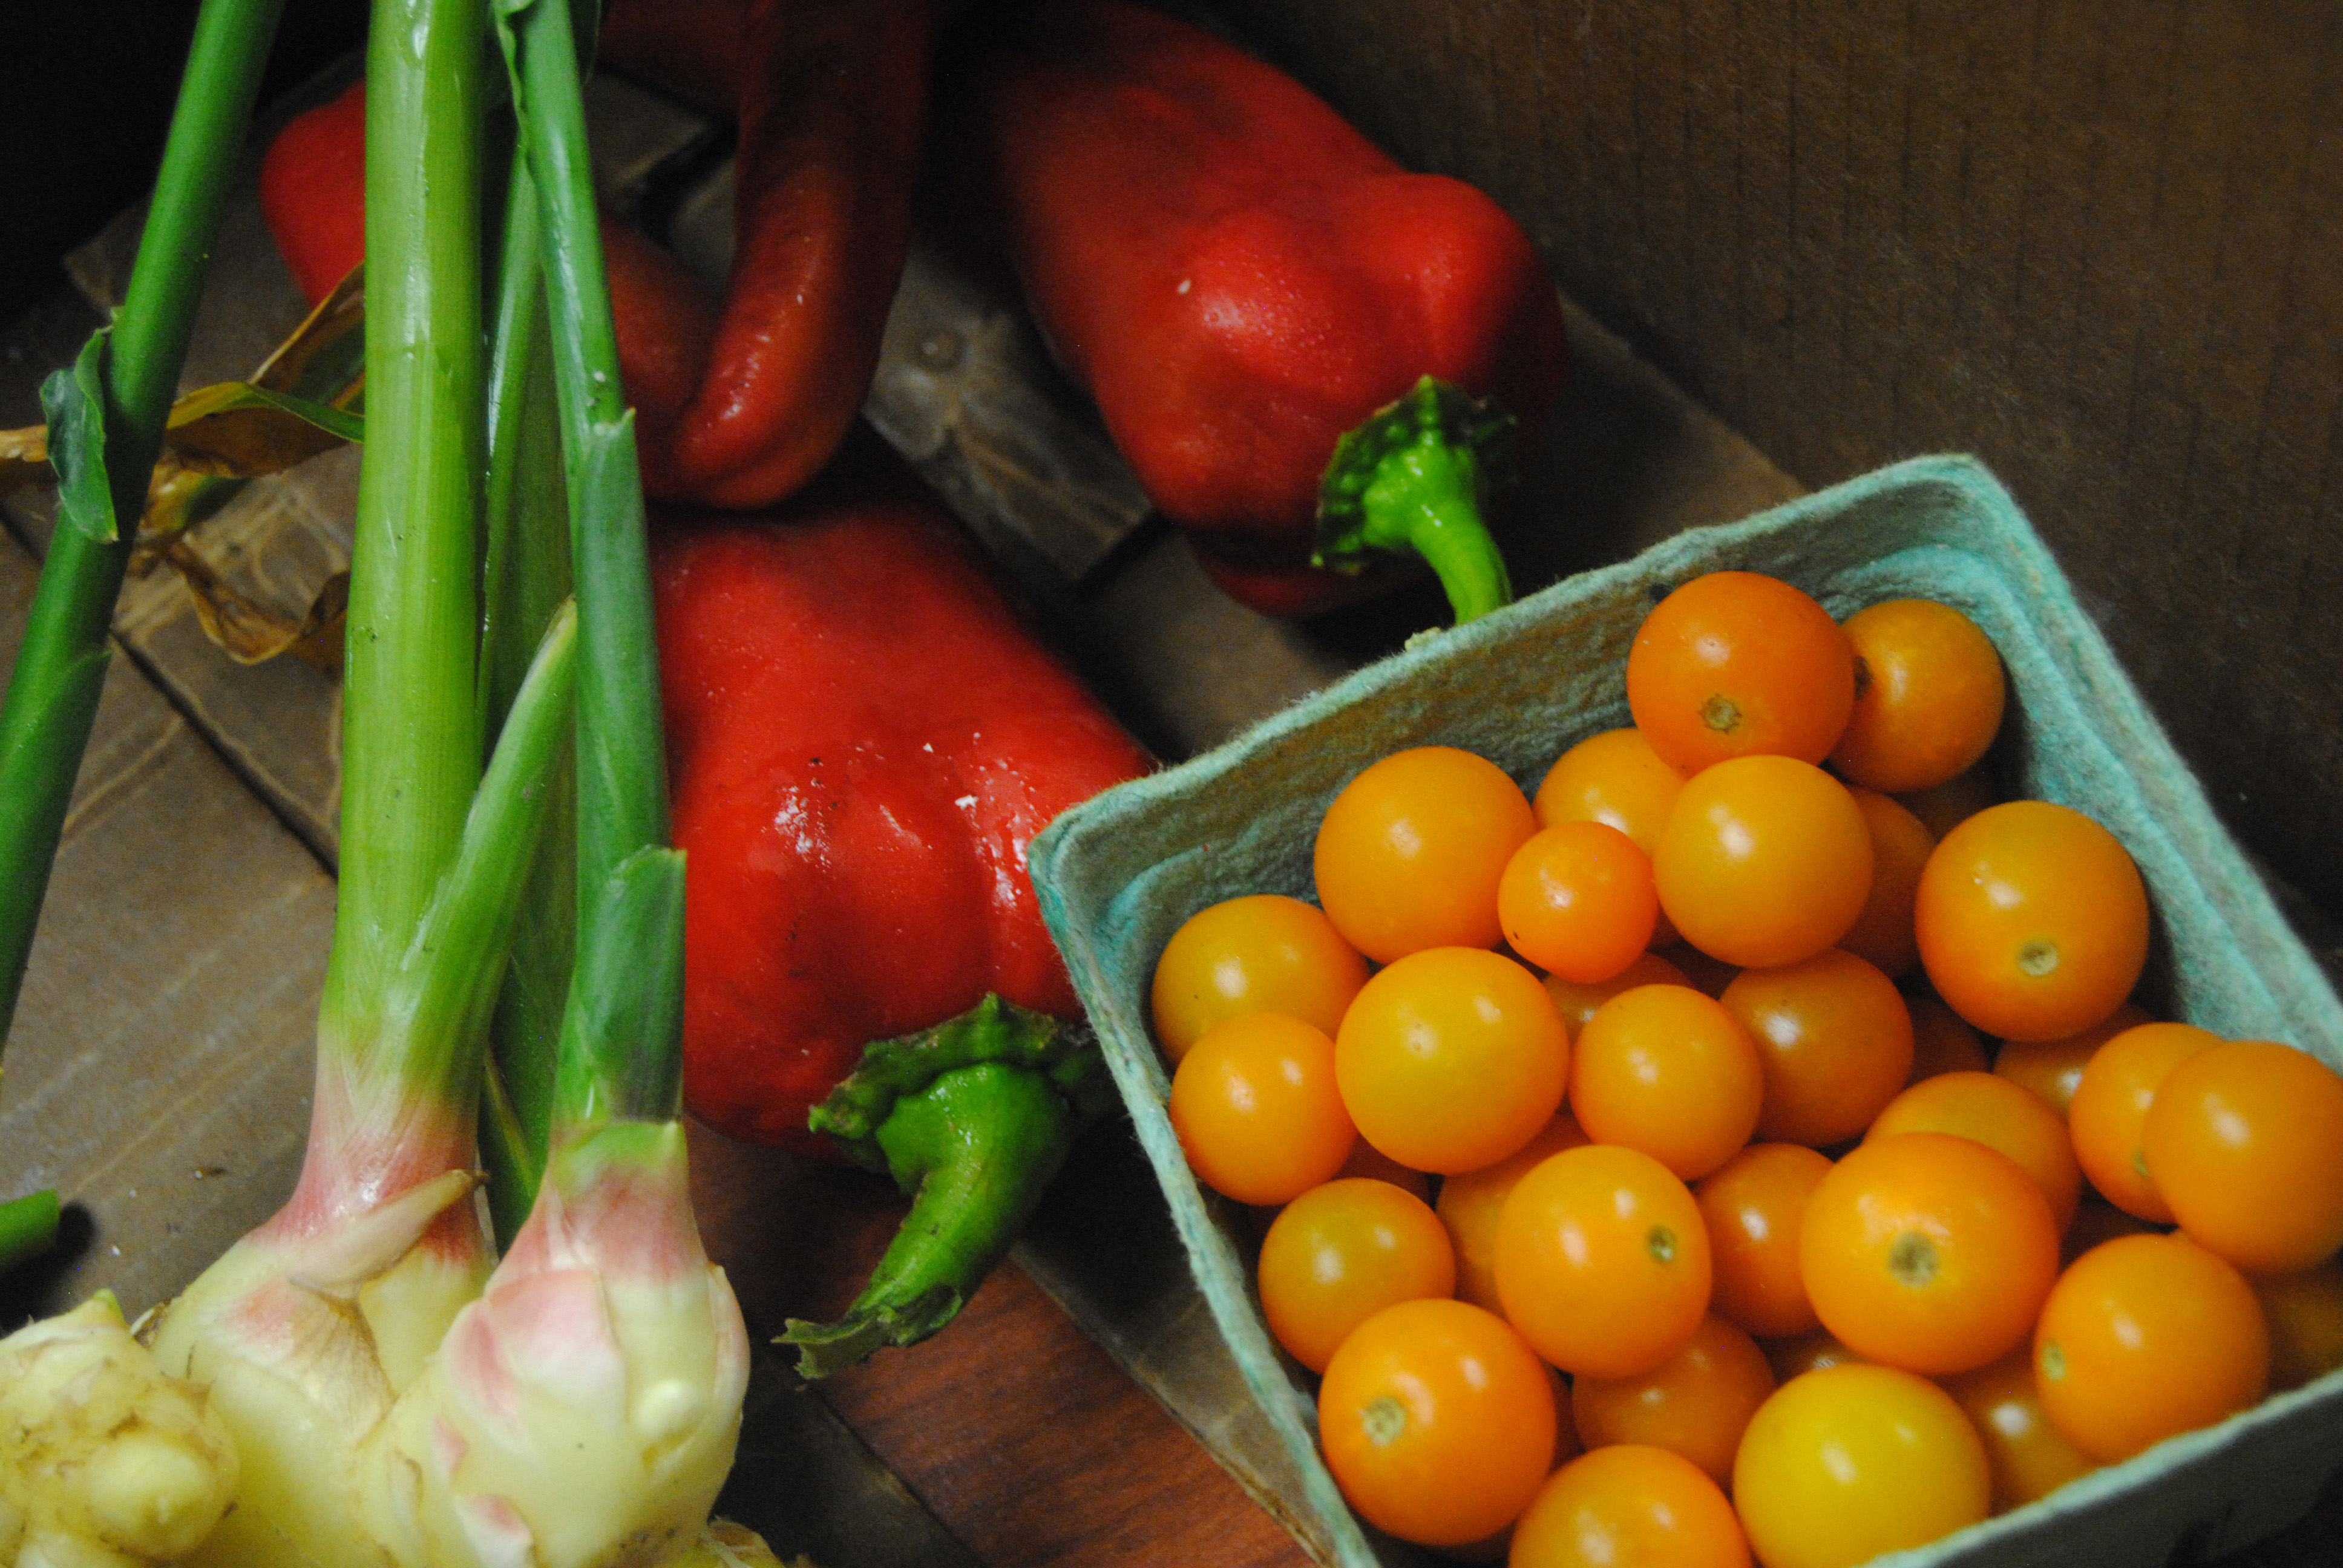 Vegetables from Real Food Farm ready to be picked up by Baltimore City employees, as part of their community-supported agriculture program on Sept. 10, 2015. (Capital News Service/Julie Gallagher)